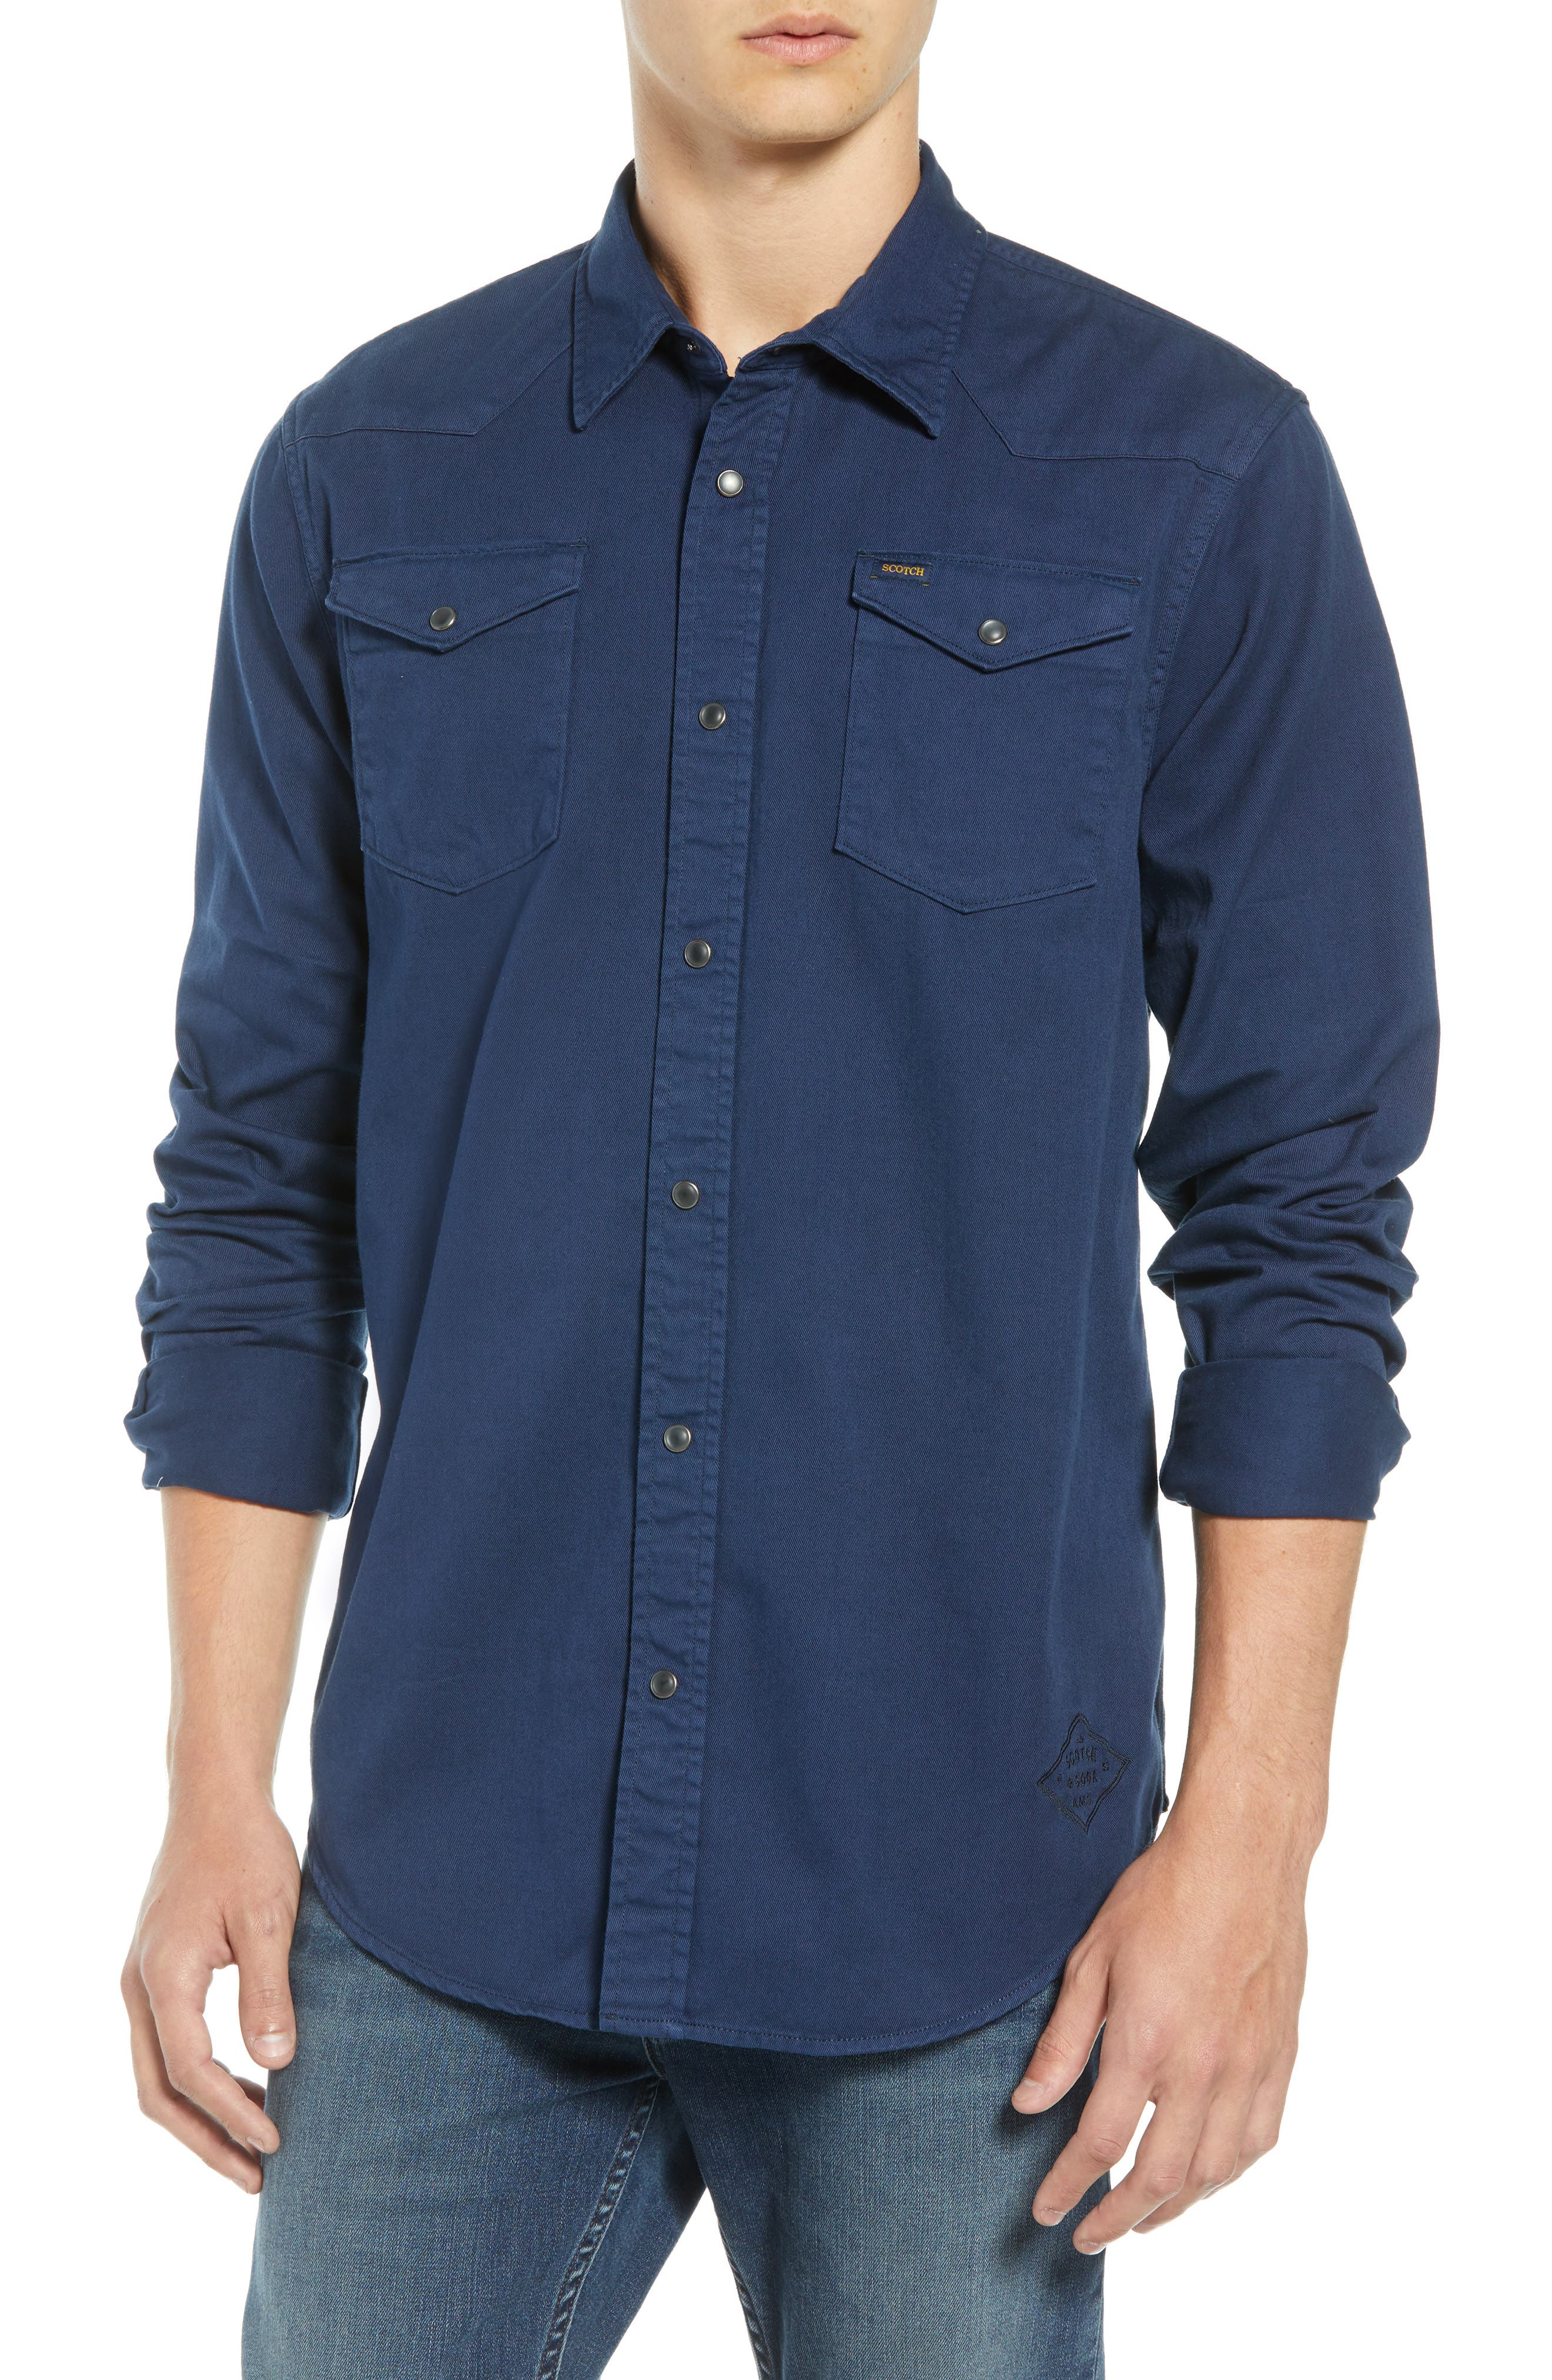 Regular Fit Garment Dyed Shirt,                         Main,                         color, DENIM BLUE